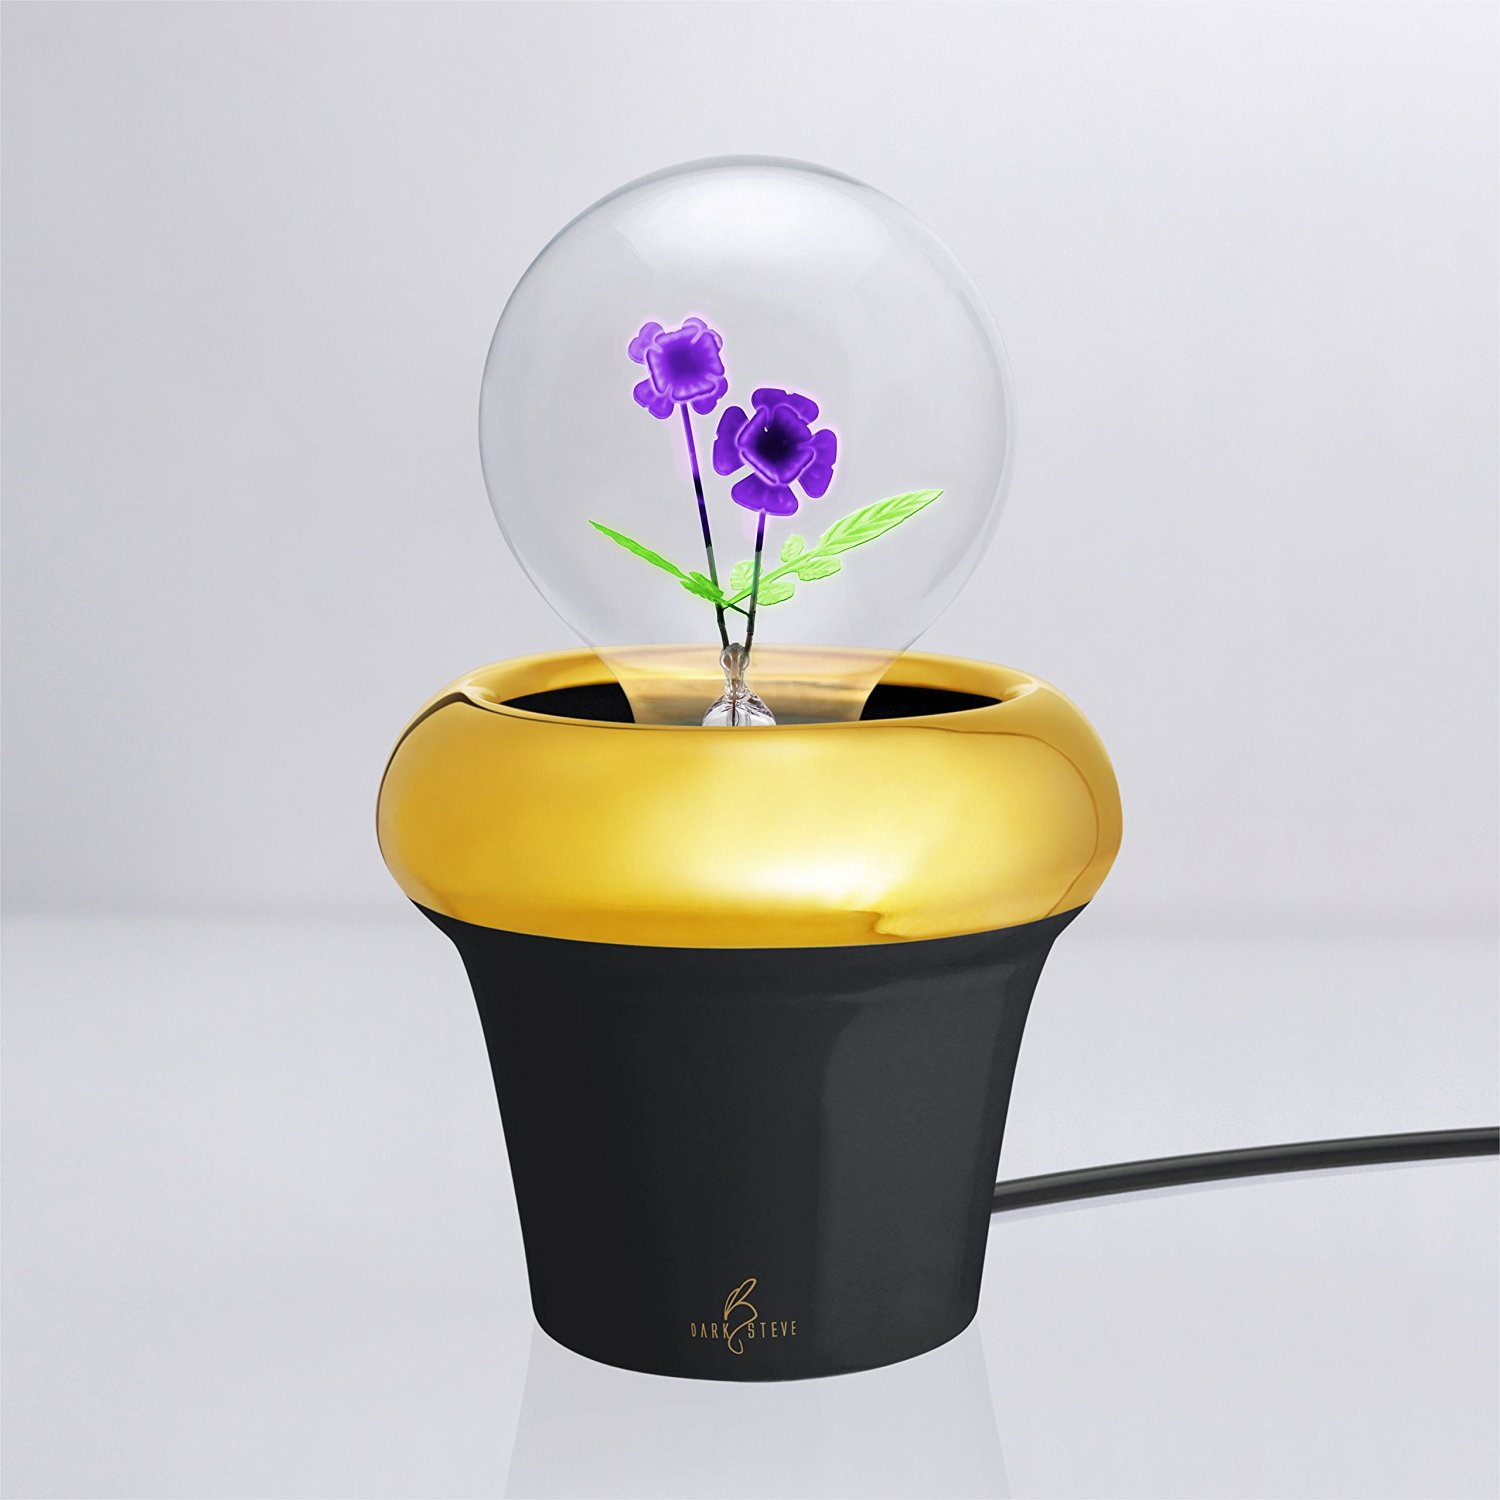 DarkSteve - Royal Pot Collection | Handmade porcelain, add the Designer Light Bulb / Edison Light Bulb, you can enjoy yourself in a more relaxing atmosphere | for Adults & Teens | Great for Gift | Novelty Night Light, Bed Side Lamp | Black porcelain | Lamp x 1pc (Light Bulb Not Included) | Special